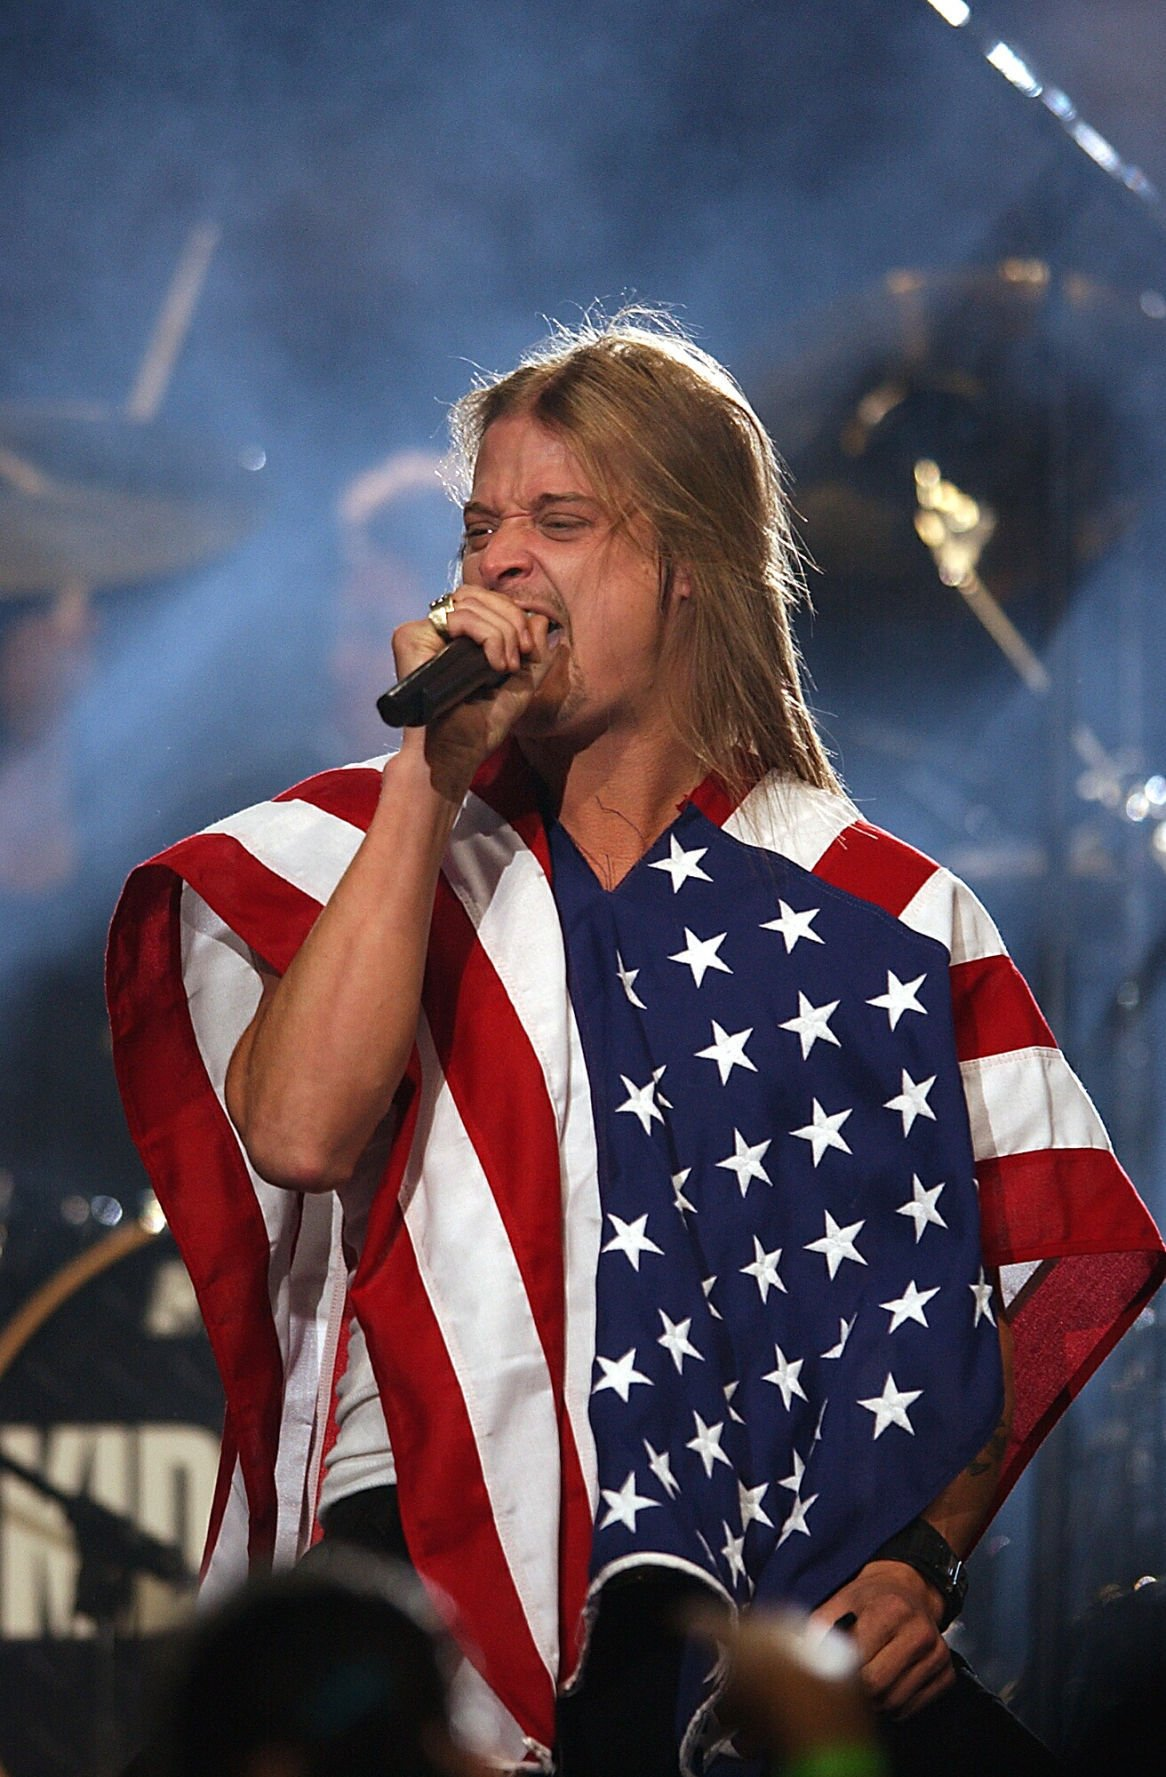 Where Is Kid Rock Originally From